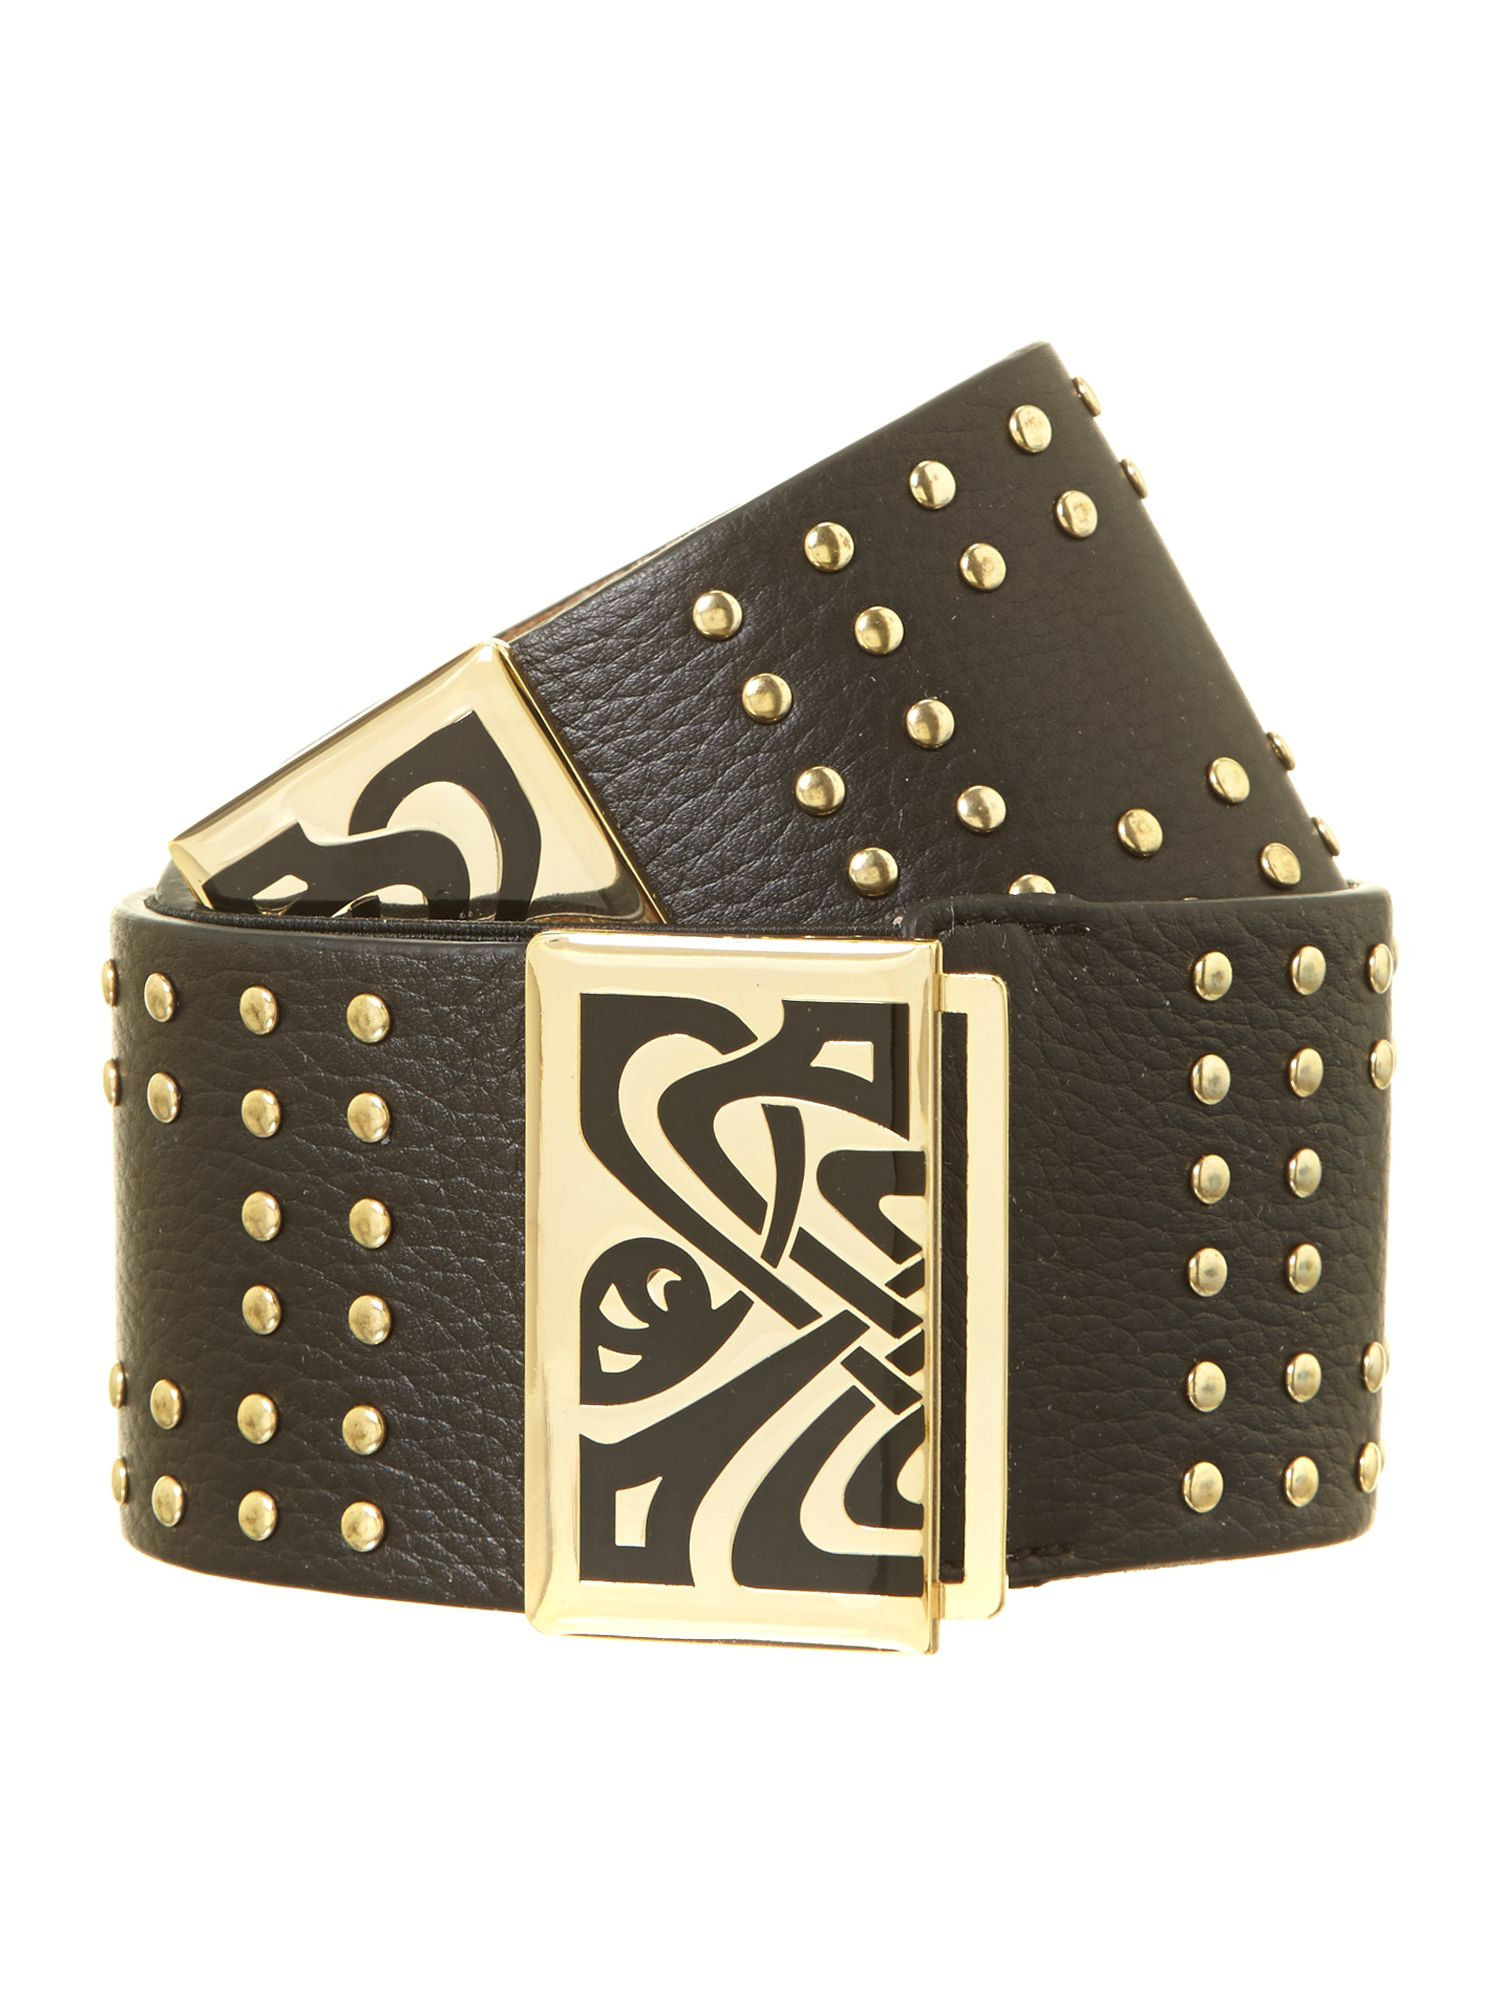 Studded enamel belt